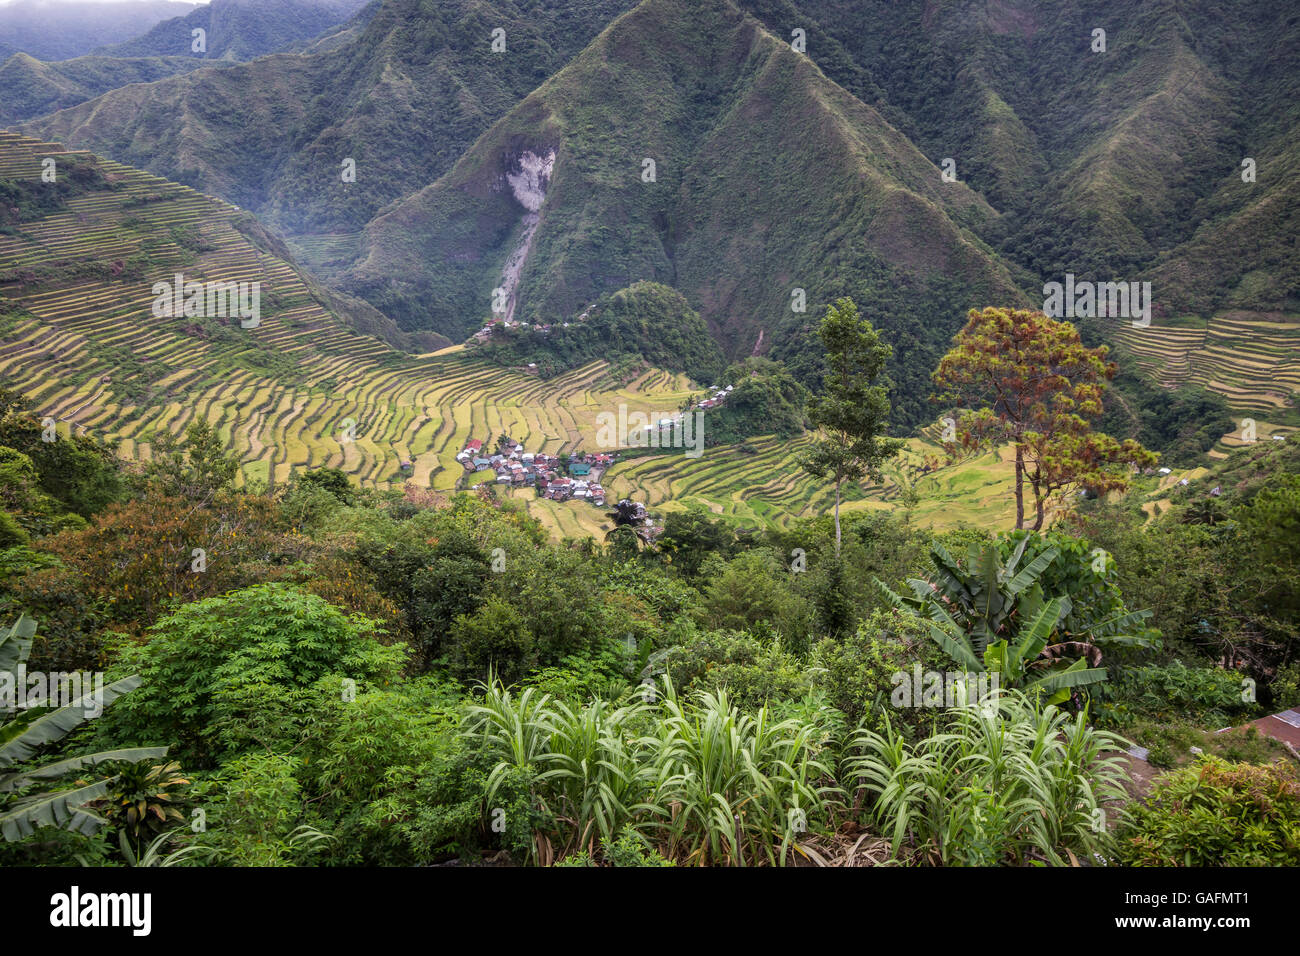 Batad rice terraces have an amphitheatre semi-circular quality with a village at its base. - Stock Image